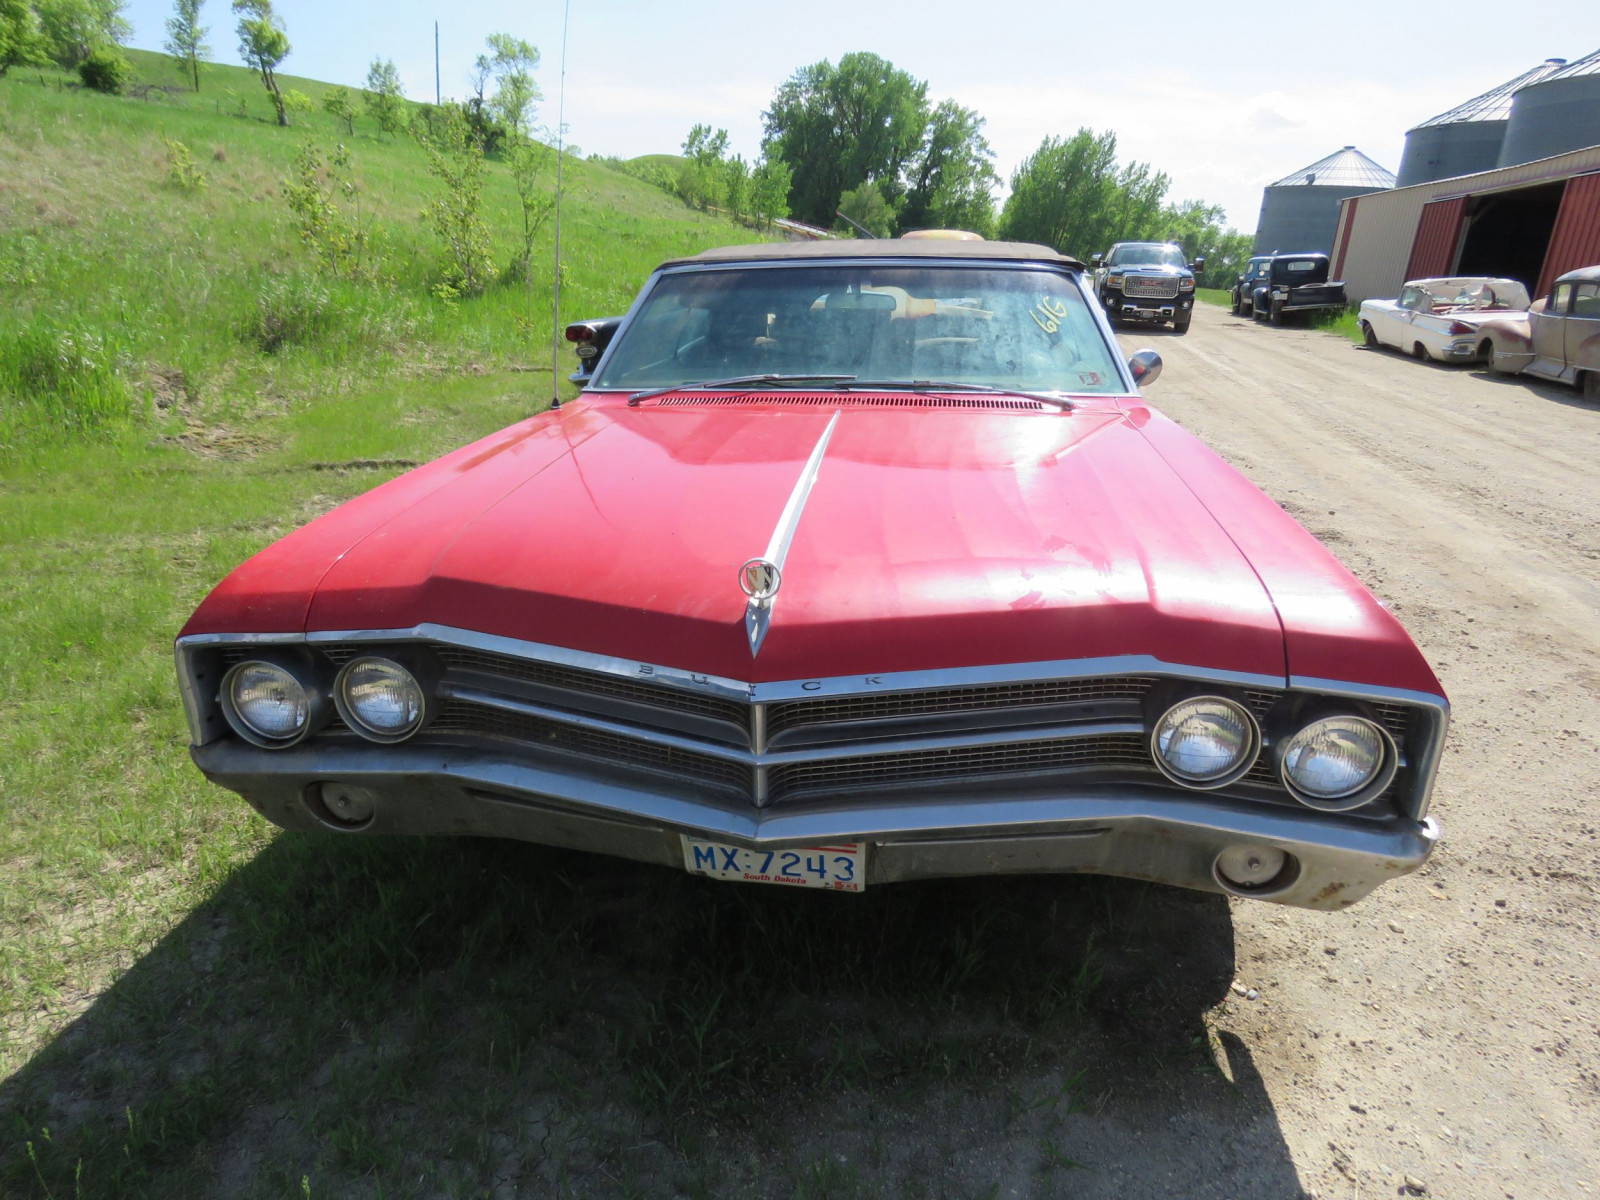 1965 Buick Electra 225 Convertible 484675H286474 - Image 2